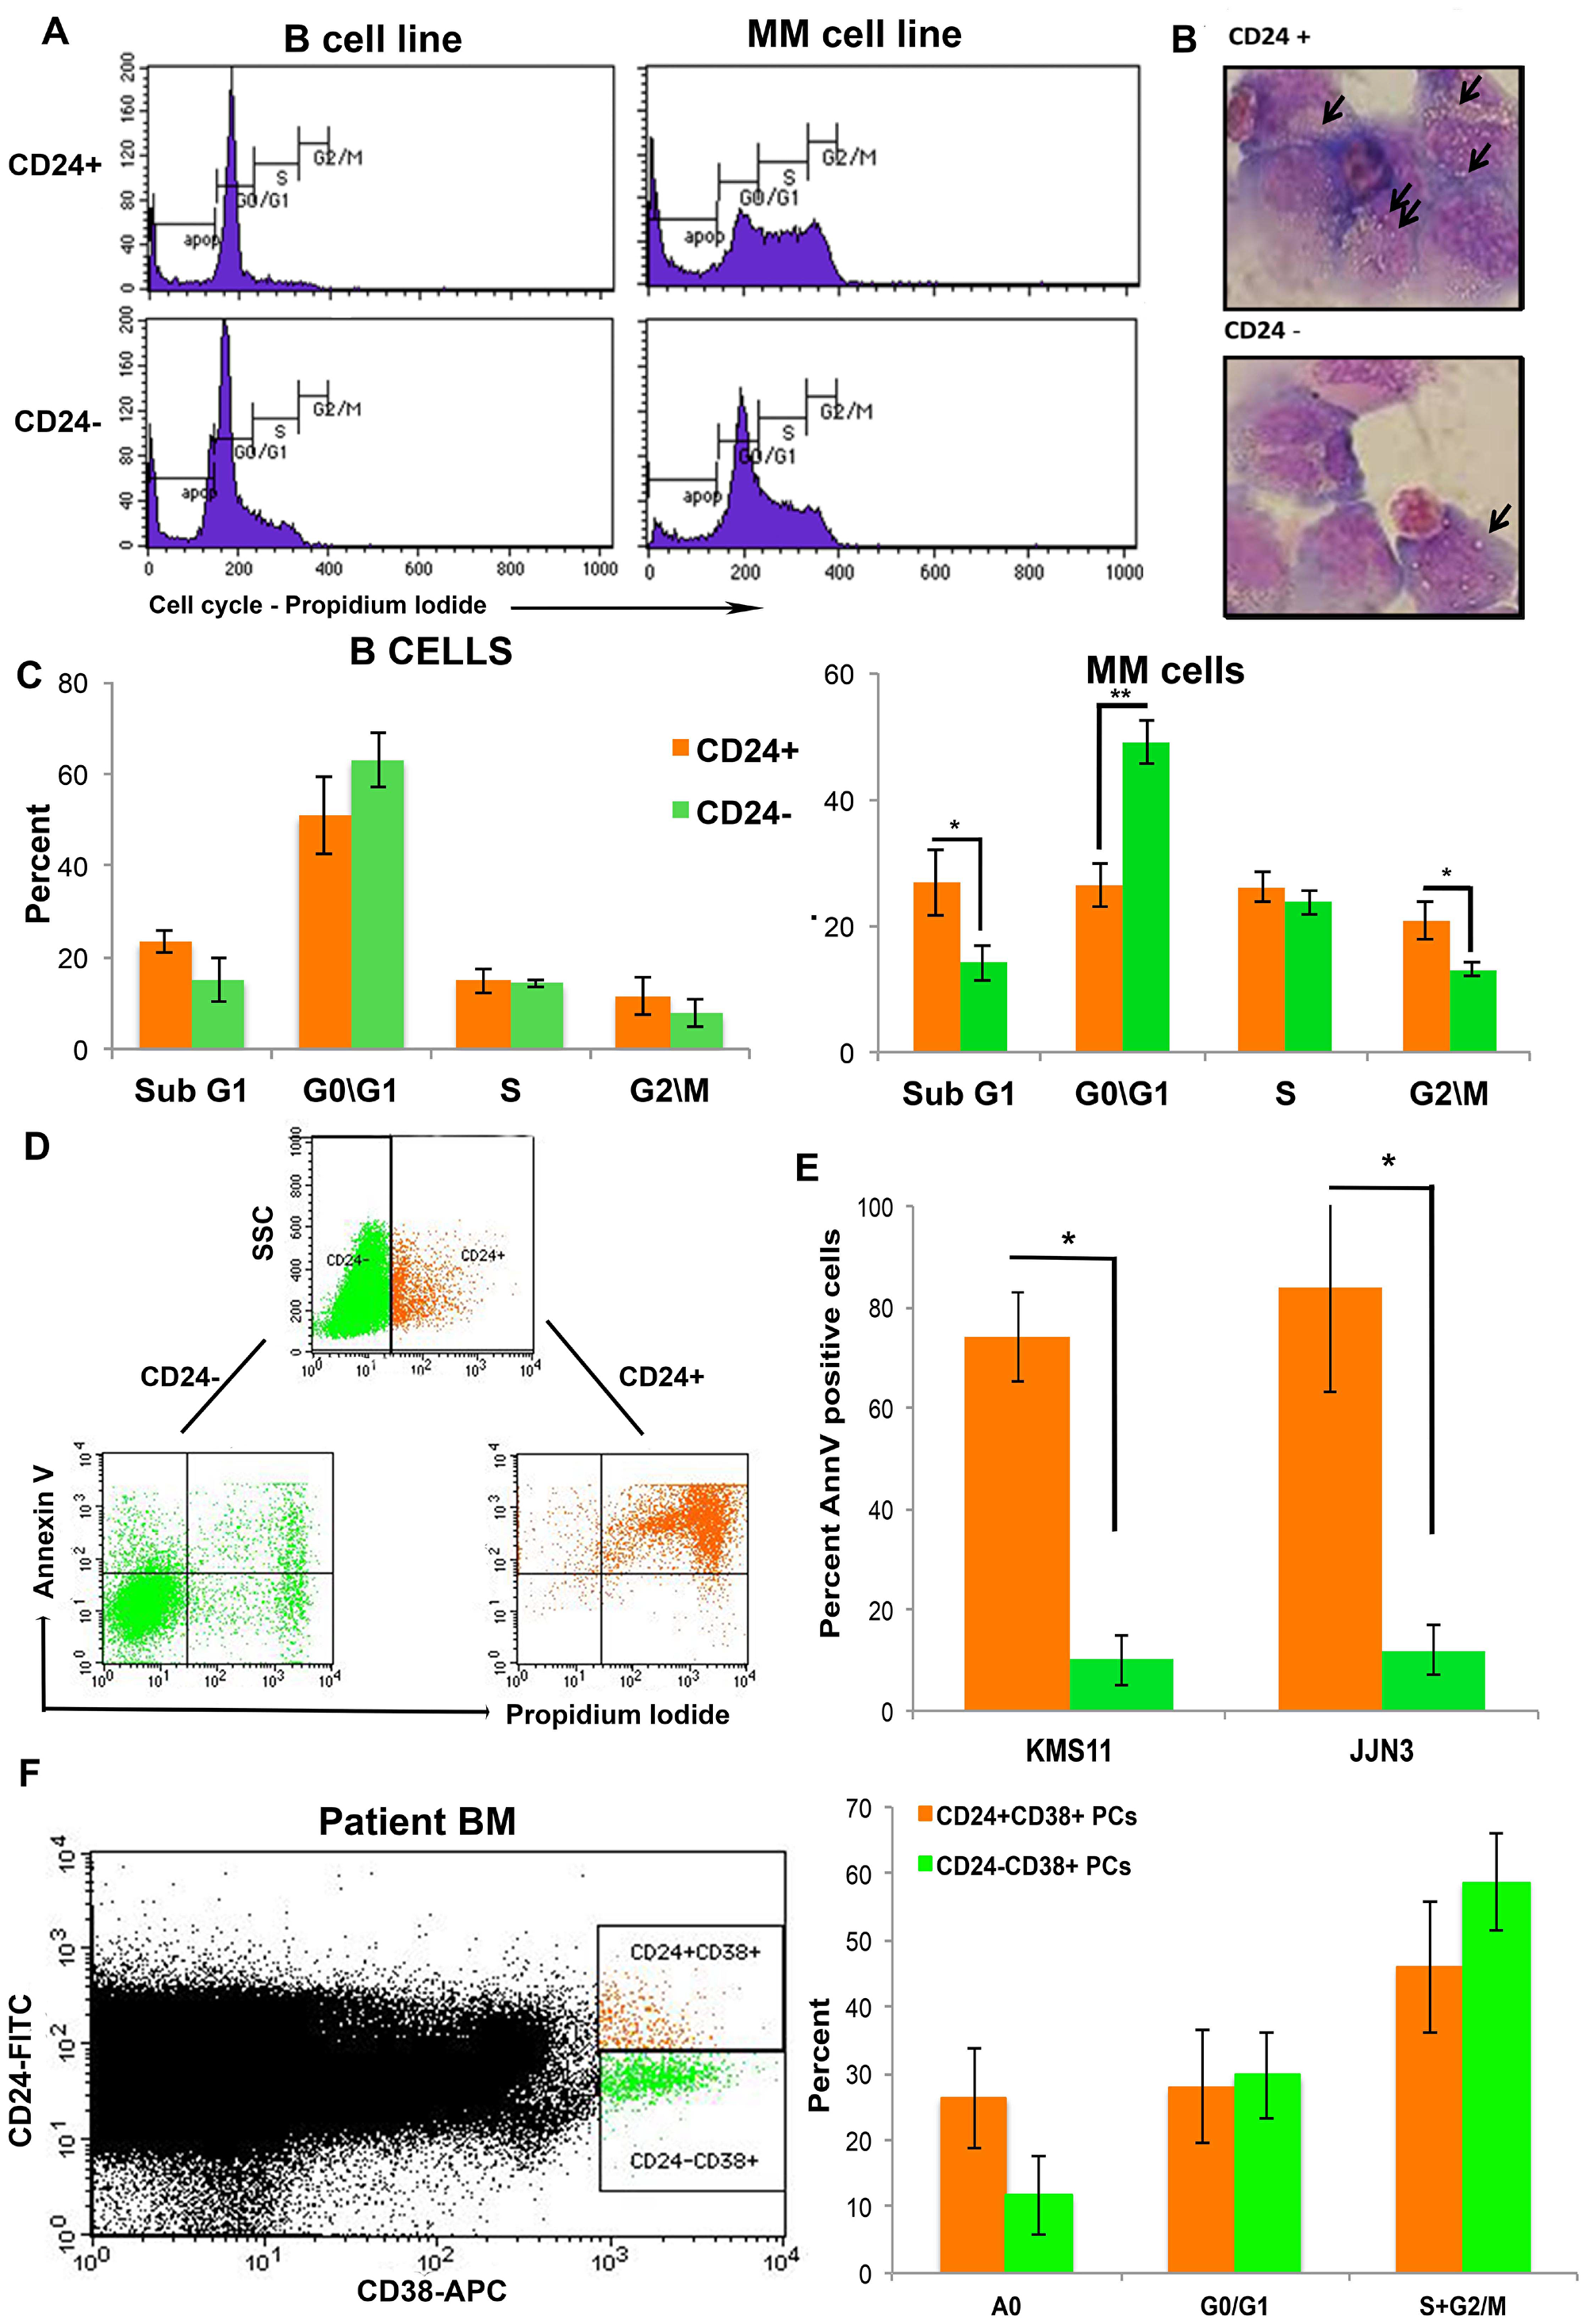 Up-regulation in CD24 expression correlates with increased apoptosis in MM cells.